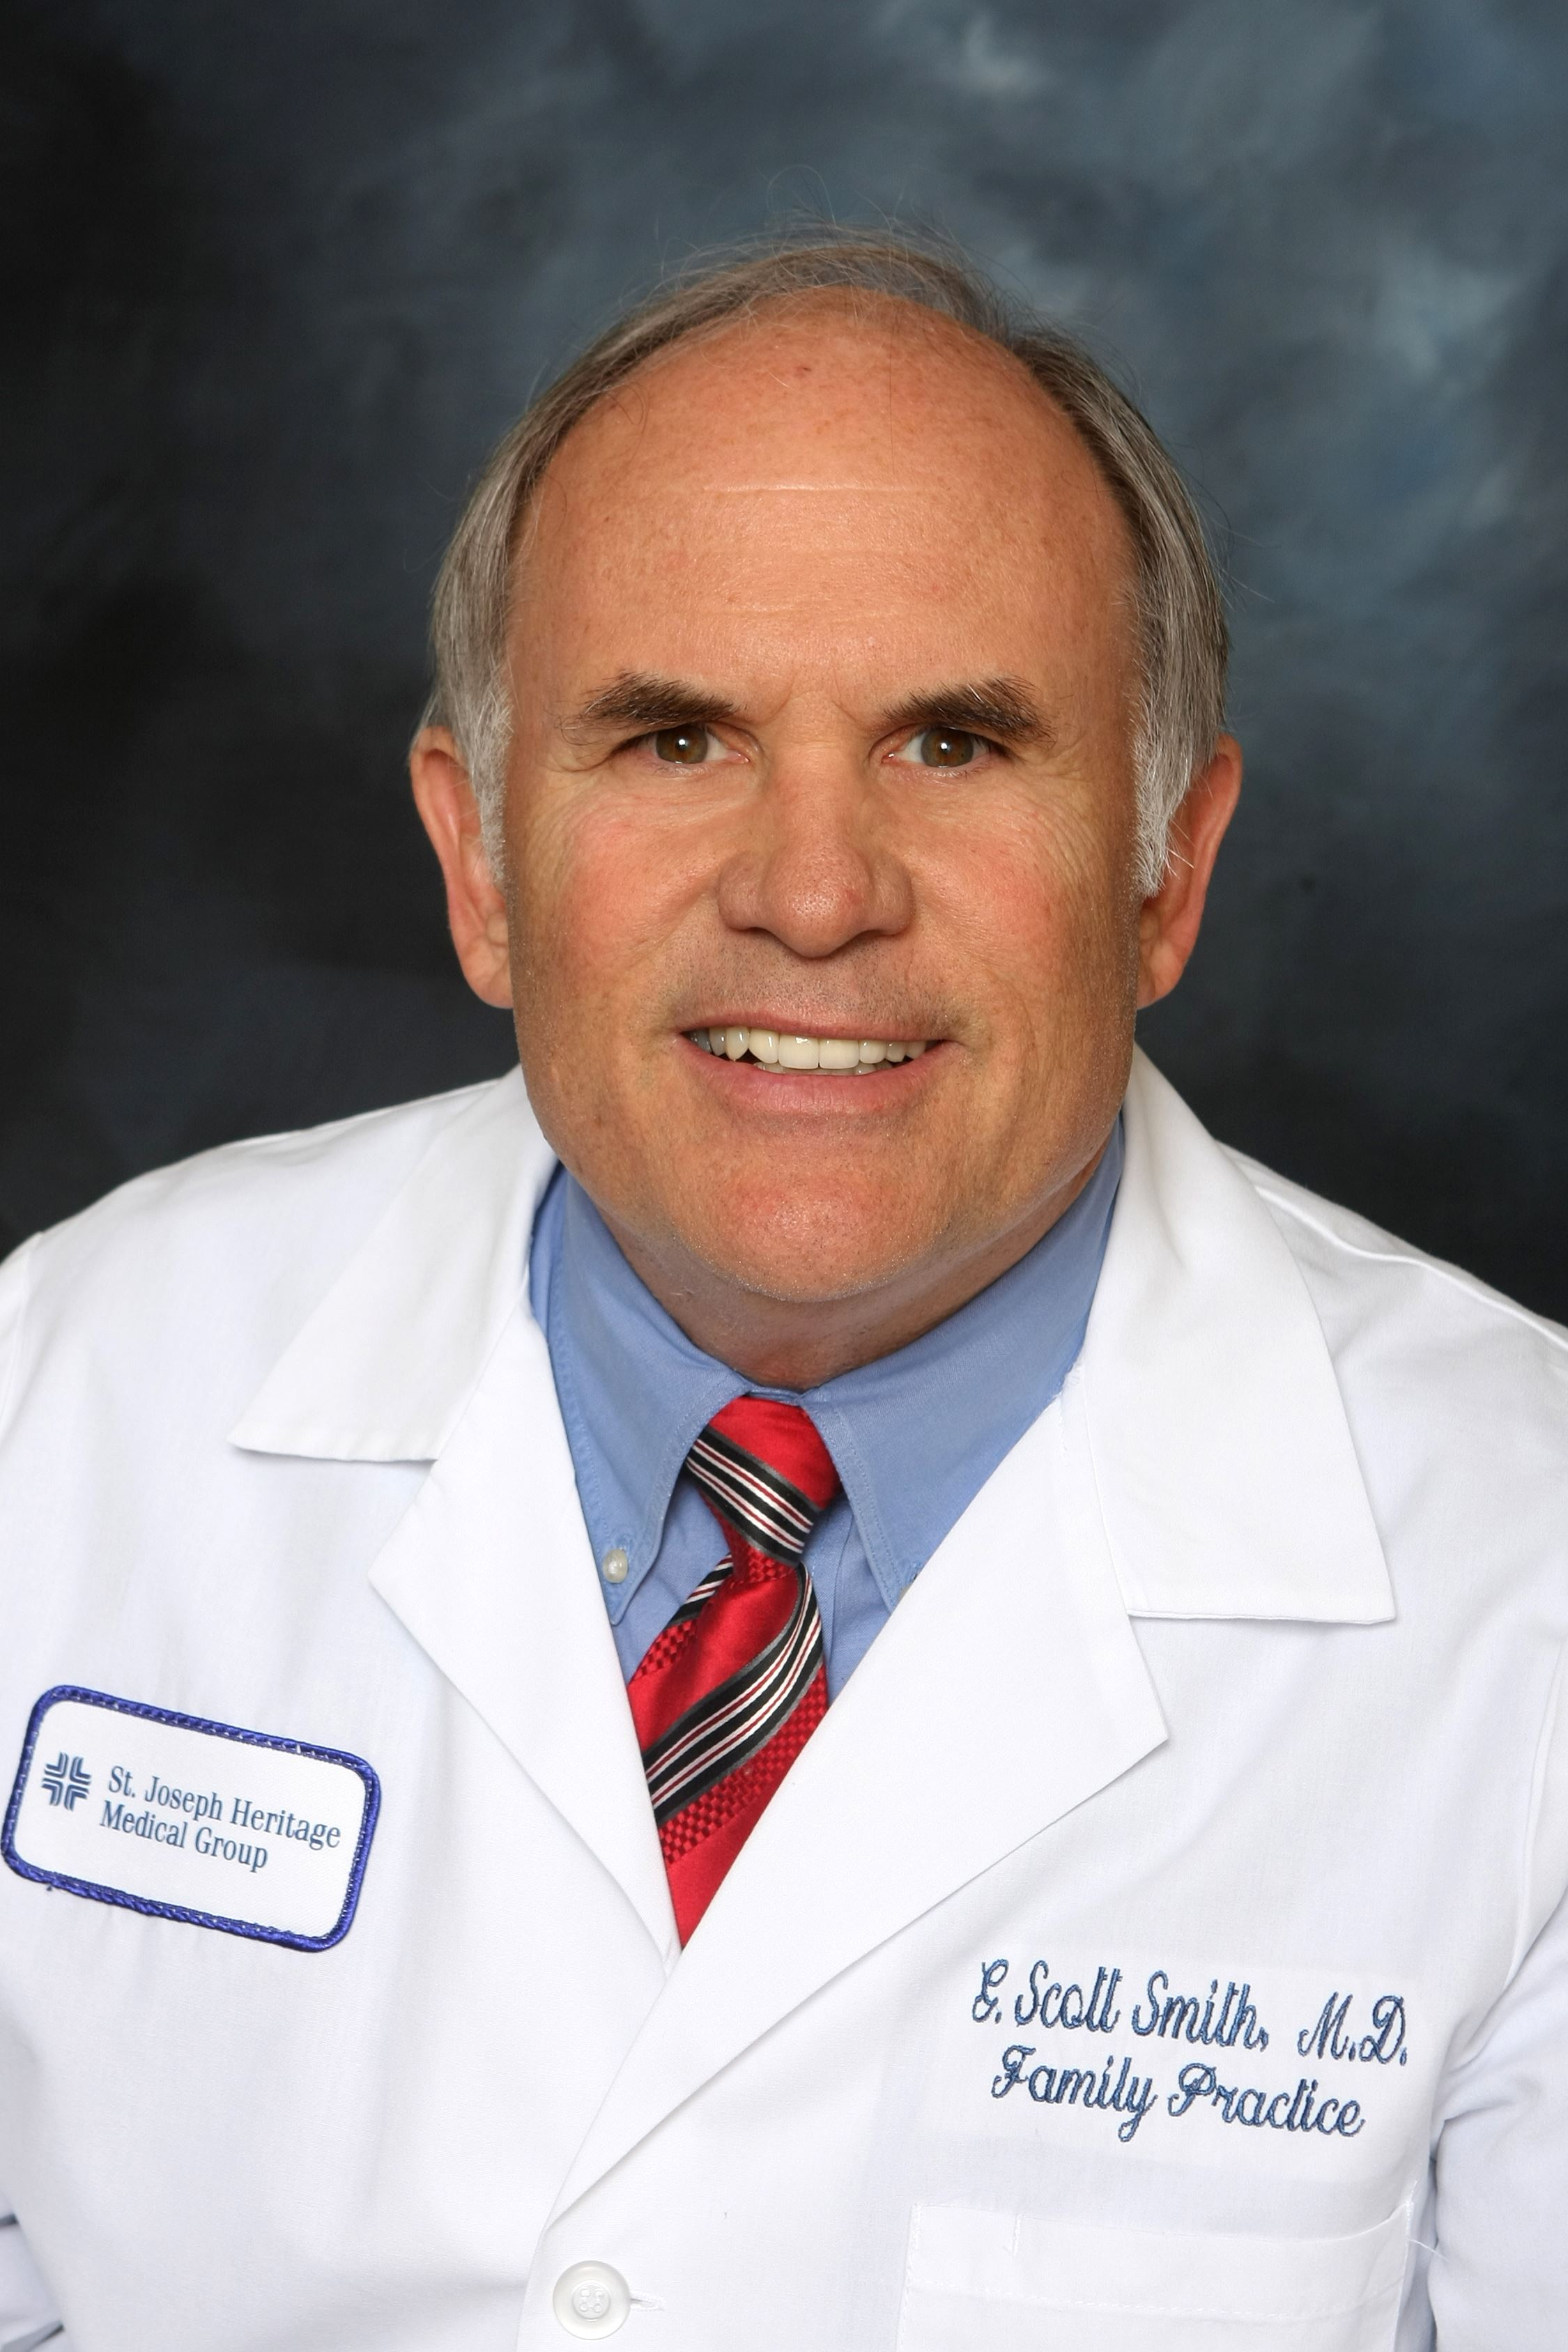 Glen Scott Smith, MD